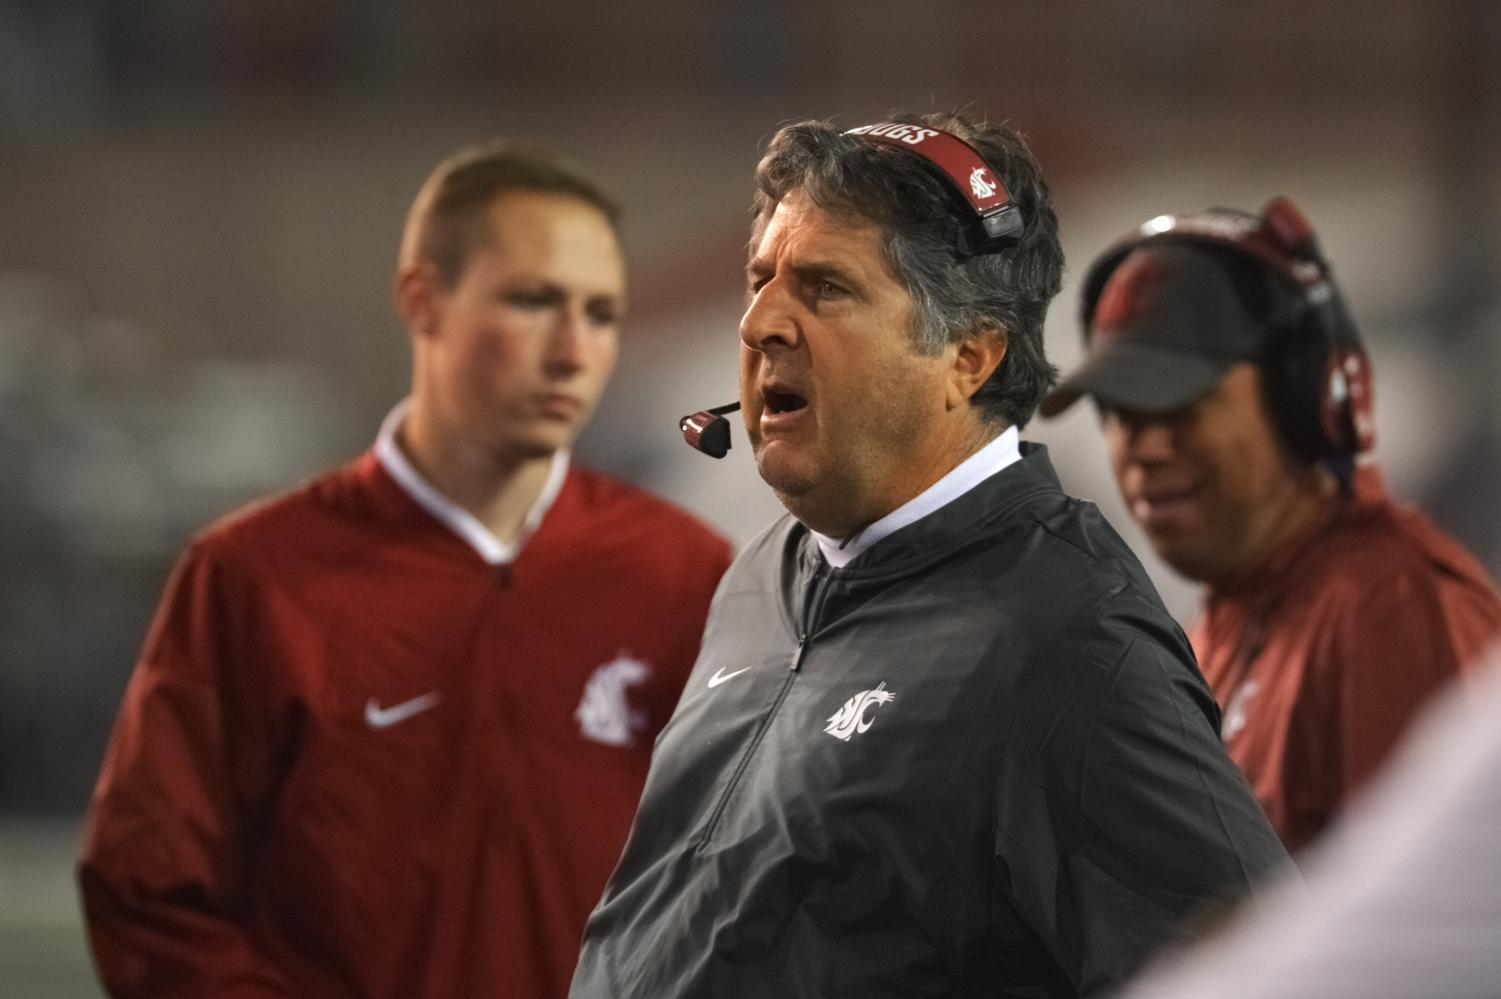 Head coach Mike Leach makes calls from the sideline in the game against Eastern Washington Sept. 15 at Martin Stadium.